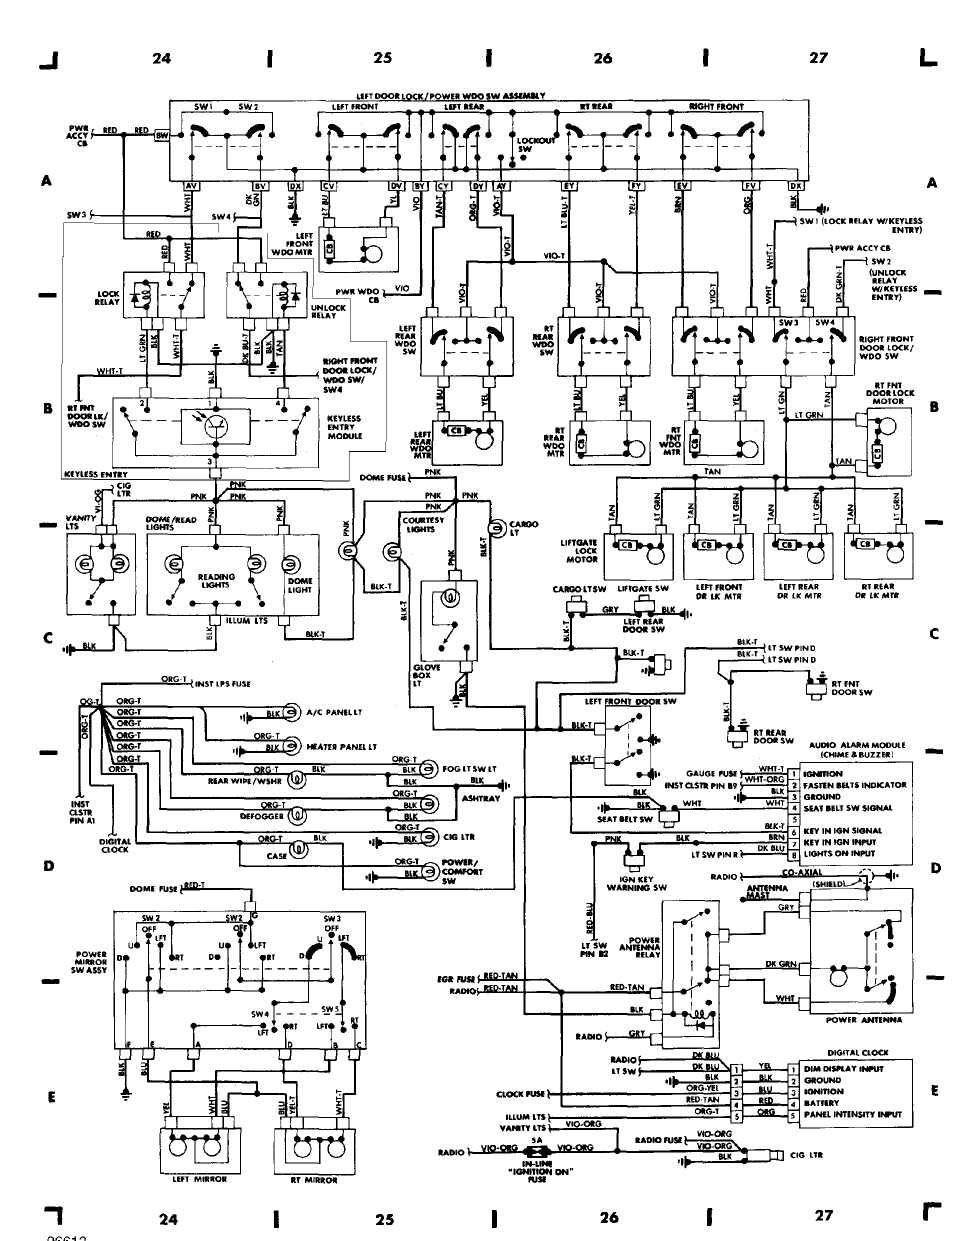 wiring_diagrams_html_61f5e0ad 2000 jeep wiring diagram 1998 jeep wrangler wiring diagram \u2022 free 1994 jeep wrangler fuse box diagram at soozxer.org